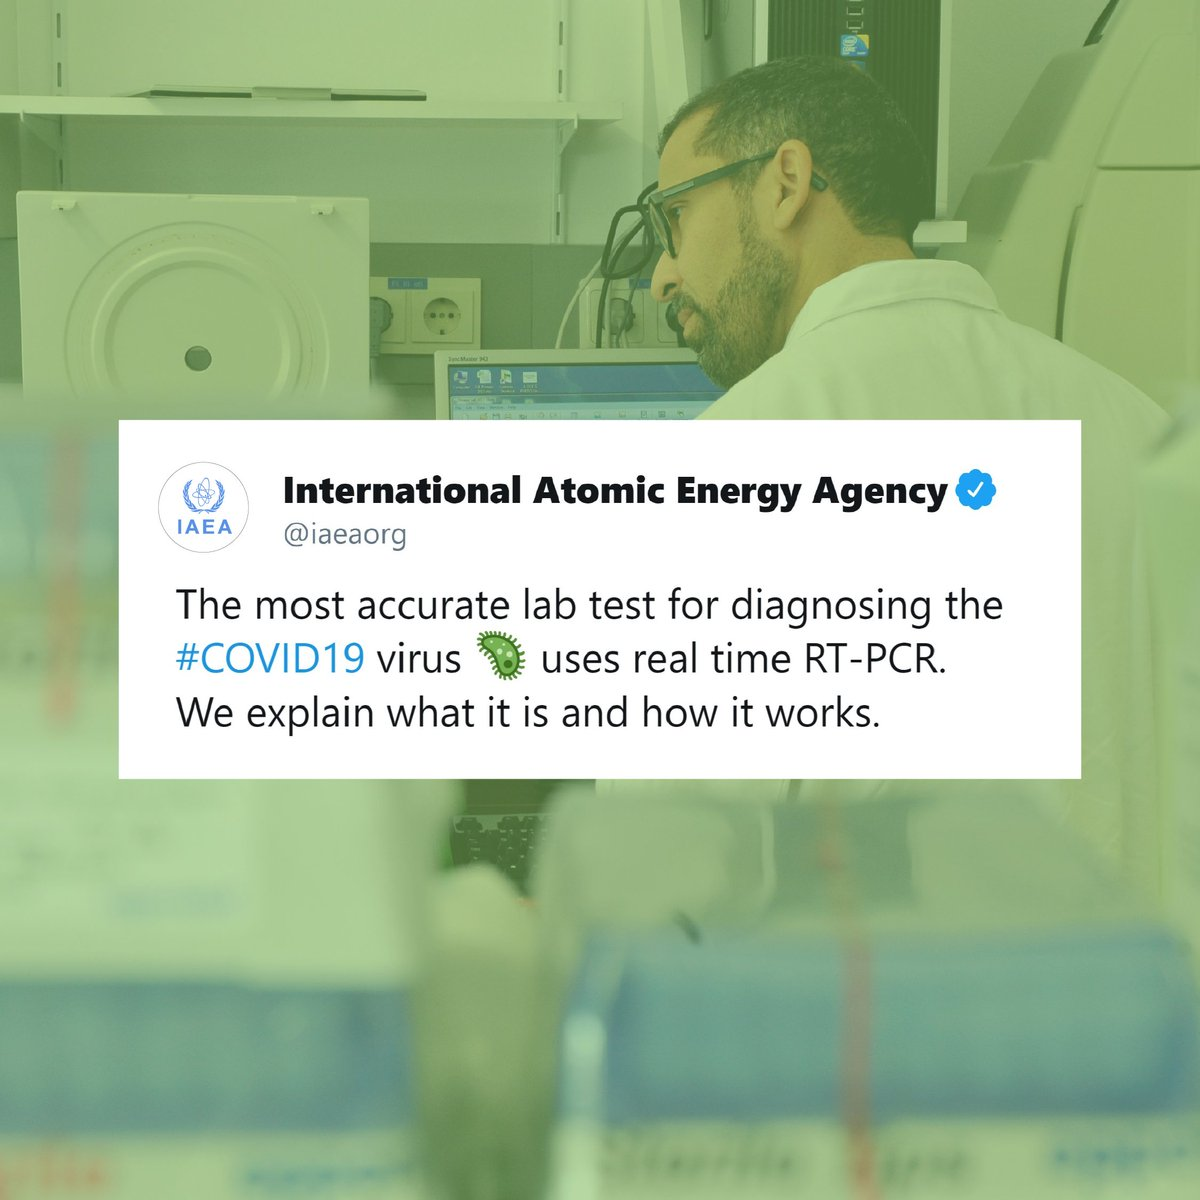 The most widely used and accurate diagnostic lab test for the #COVID19 coronavirus is a nuclear-derived technique. What is it? How does it work? Check it out: bit.ly/2JmliF4